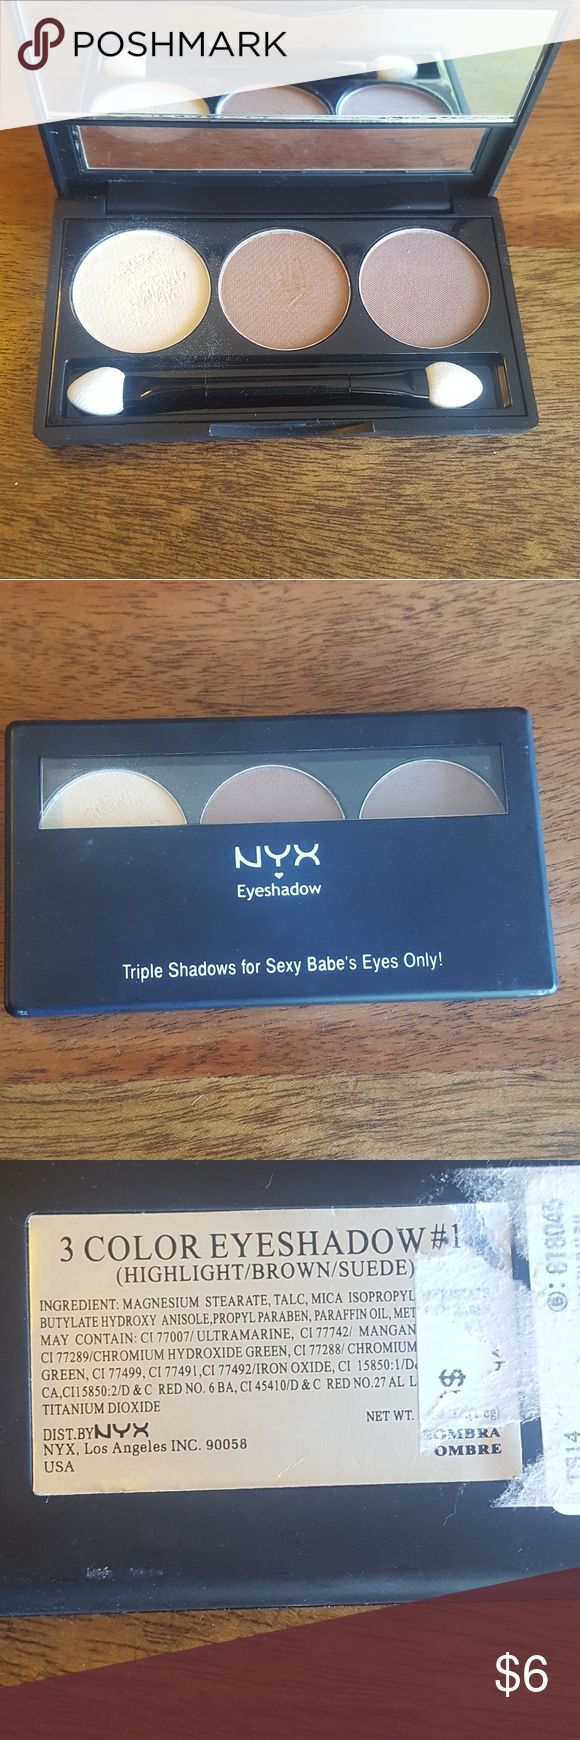 NYX Triple shadow palette  NWOT Highlight brown suede (never used) NYX Makeup Eyeshadow